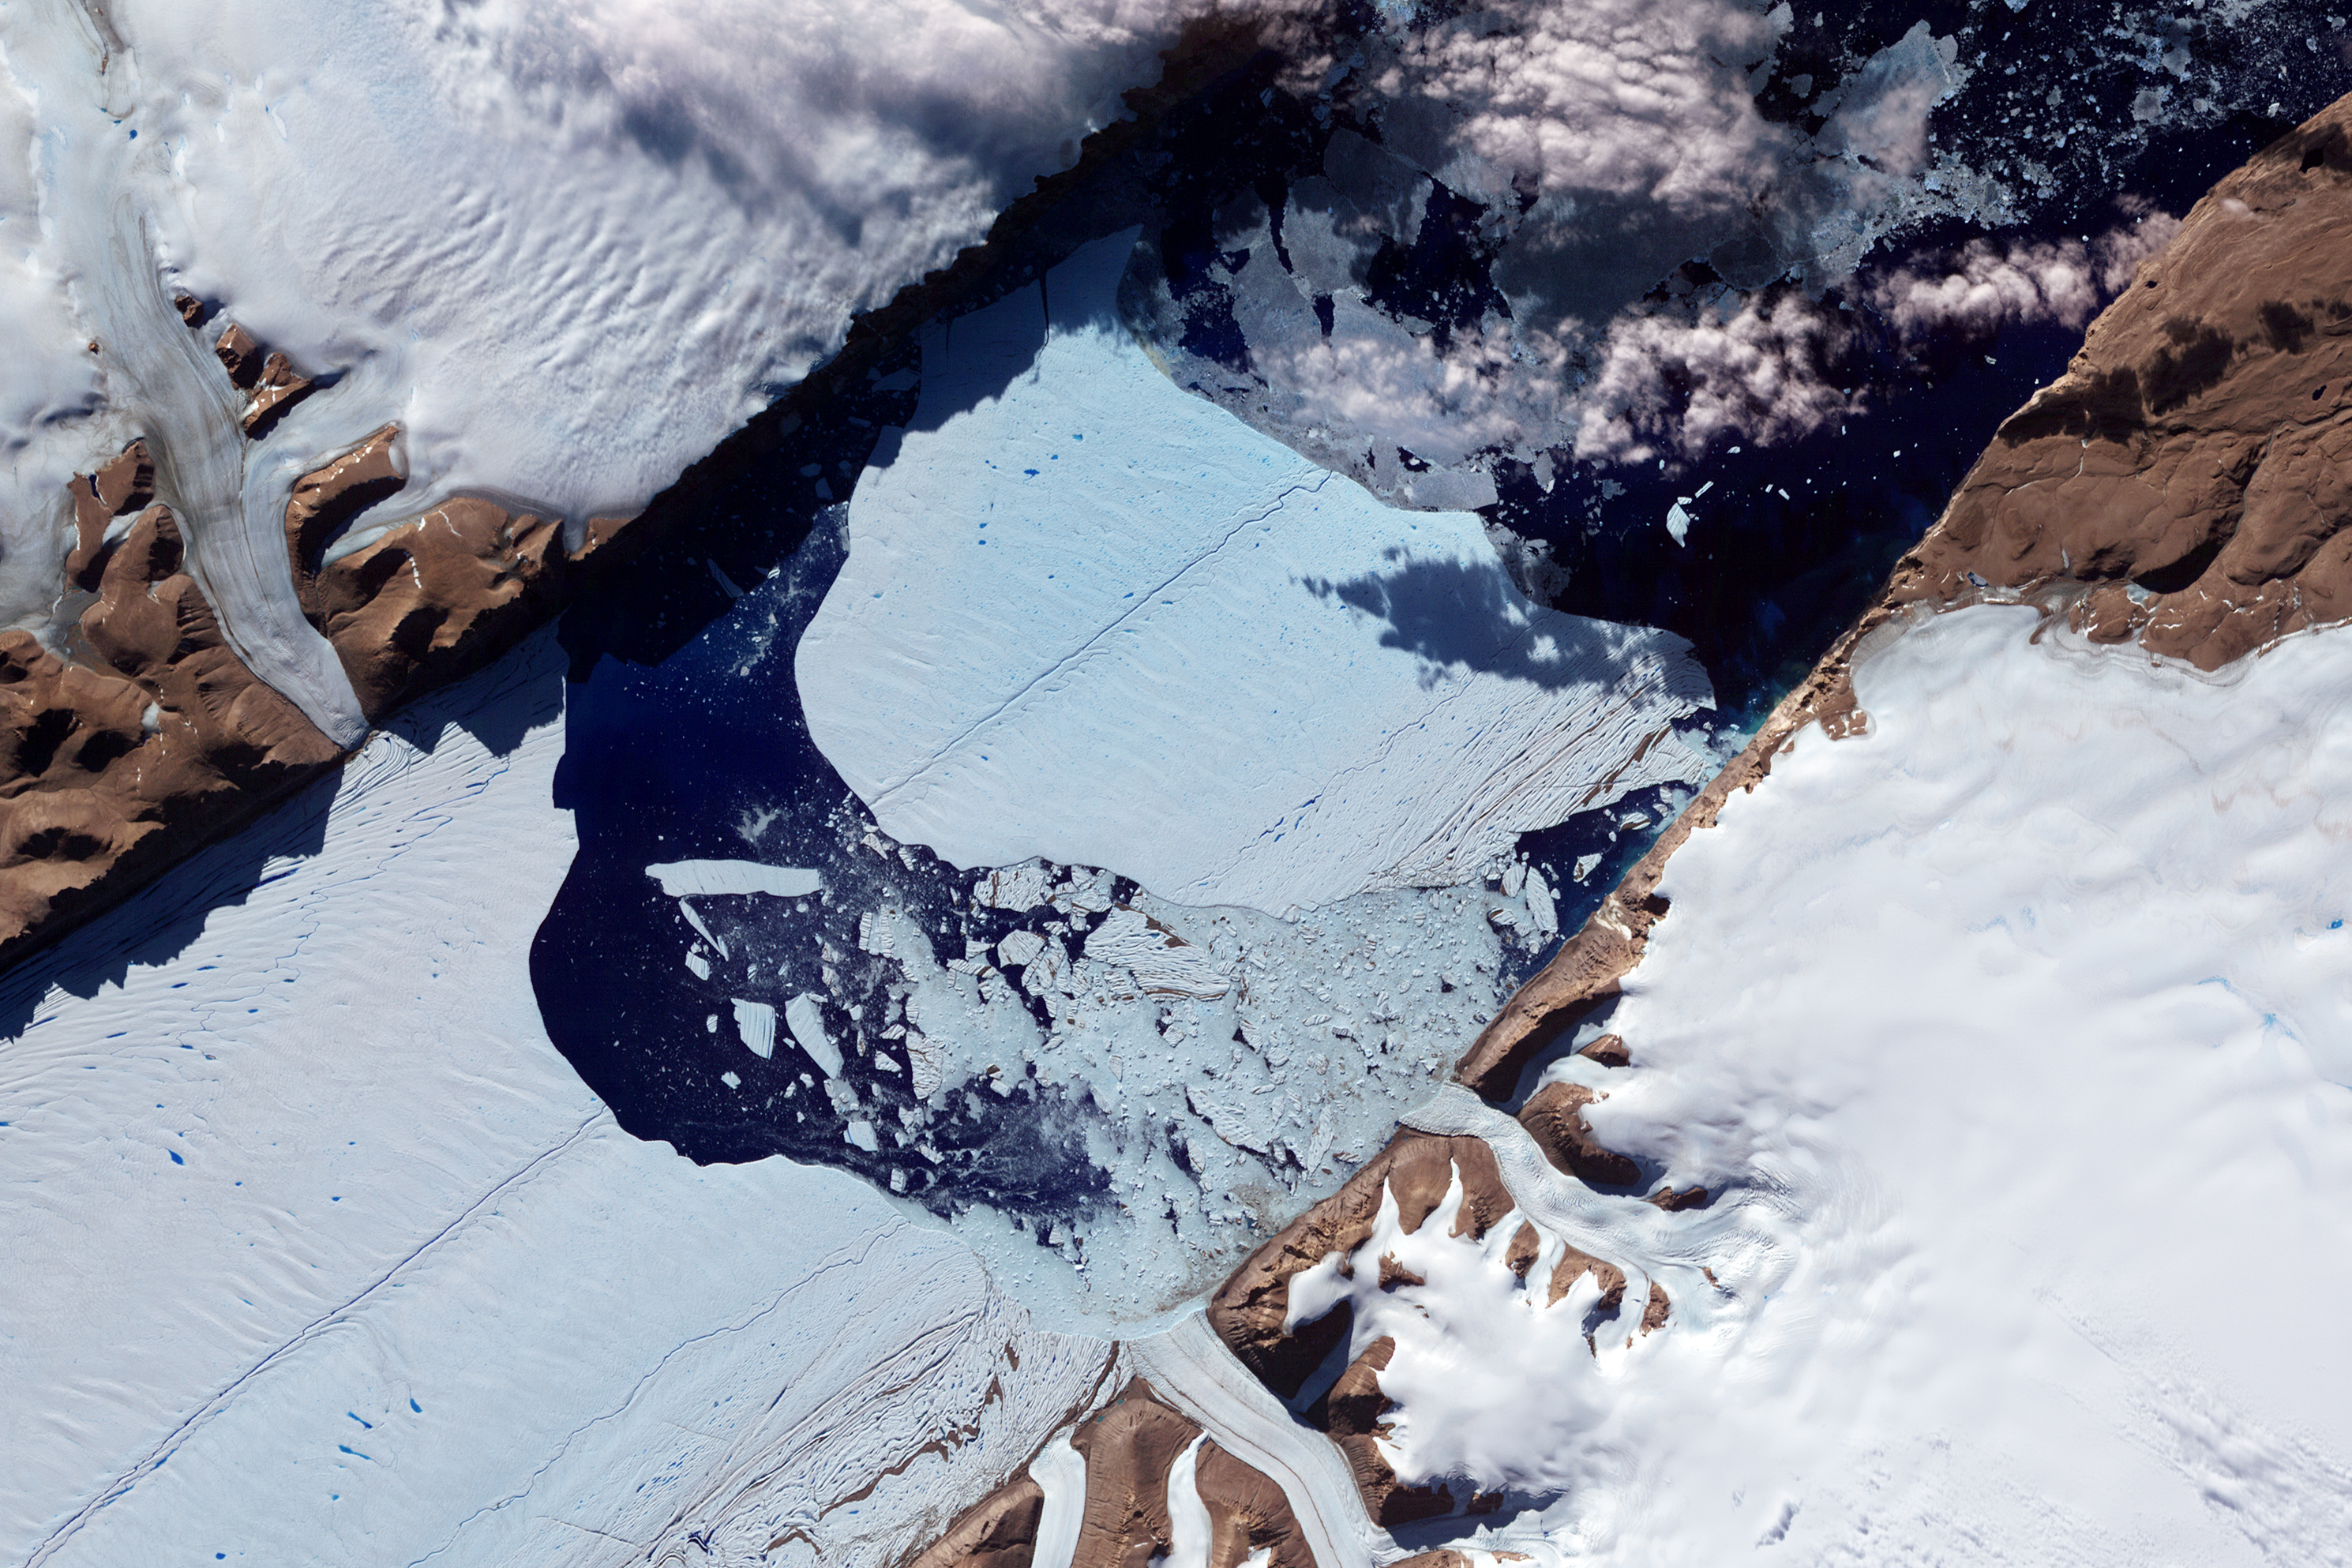 In July 2012, a massive ice island broke free of the Petermann Glacier in northwestern Greenland. On July 16, the giant iceberg could be seen drifting down the fjord, away from the floating ice tongue from which it calved. On July 21, 2012, the Advanced Spaceborne Thermal Emission and Reflection Radiometer (ASTER) on NASA's Terra satellite captured this image of the iceberg's continuing journey. This image has been rotated and north is toward the right. ASTER combines infrared, red, and green wavelengths of light to make false-color images that help to distinguish between water and land. Water is blue, ice and snow vary in color from pale blue to white, and land areas appear brick red and brown. Clouds in the scene cast dark shadows onto the iceberg surface. Similar surface cracks appear on both the Petermann Glacier and the newly formed ice island. Nearly two years earlier in July 2010, another large iceberg calved from the Petermann Glacier. That iceberg was estimated at roughly 97 square miles (251 square kilometers). The 2012 iceberg is estimated to be about half as big. This latest calving occurred farther upstream on the Petermann, but nevertheless occurred along a rift that appeared in satellite imagery in 2001. Ted Scambos of the National Snow and Ice Data Center observed melt ponds on the iceberg surface, but stated that the Petermann calving was likely associated with ocean currents rather than surface melt. (Jesse Allen and Robert Simmon / NASA Earth Observatory image using data from NASA / GSFC / METI / ERSDAC / JAROS and U.S./Japan ASTER Science Team.)